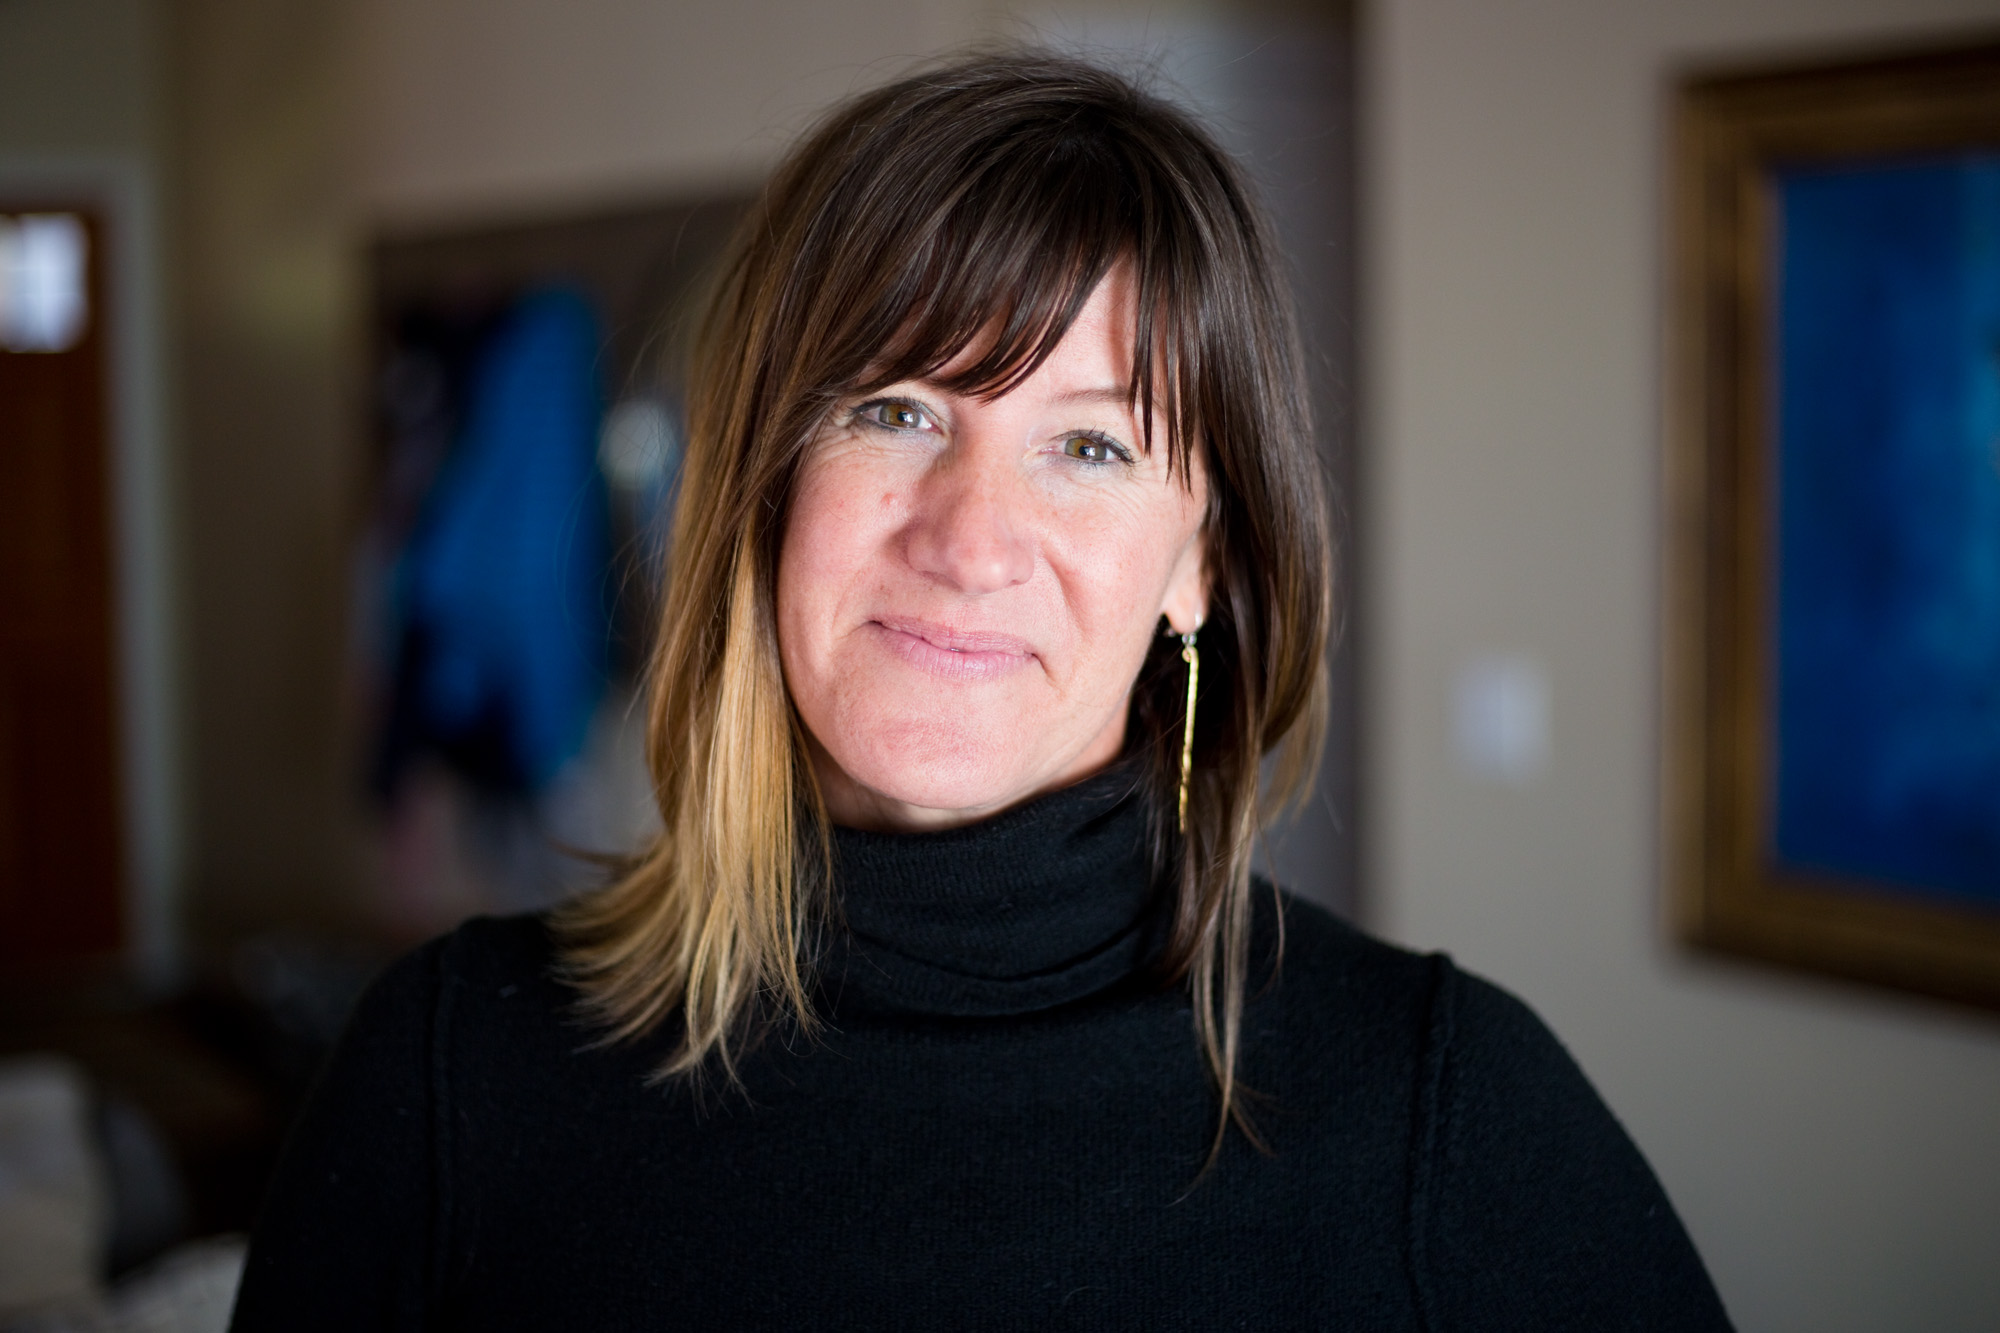 Jill Rose, 47, at her home